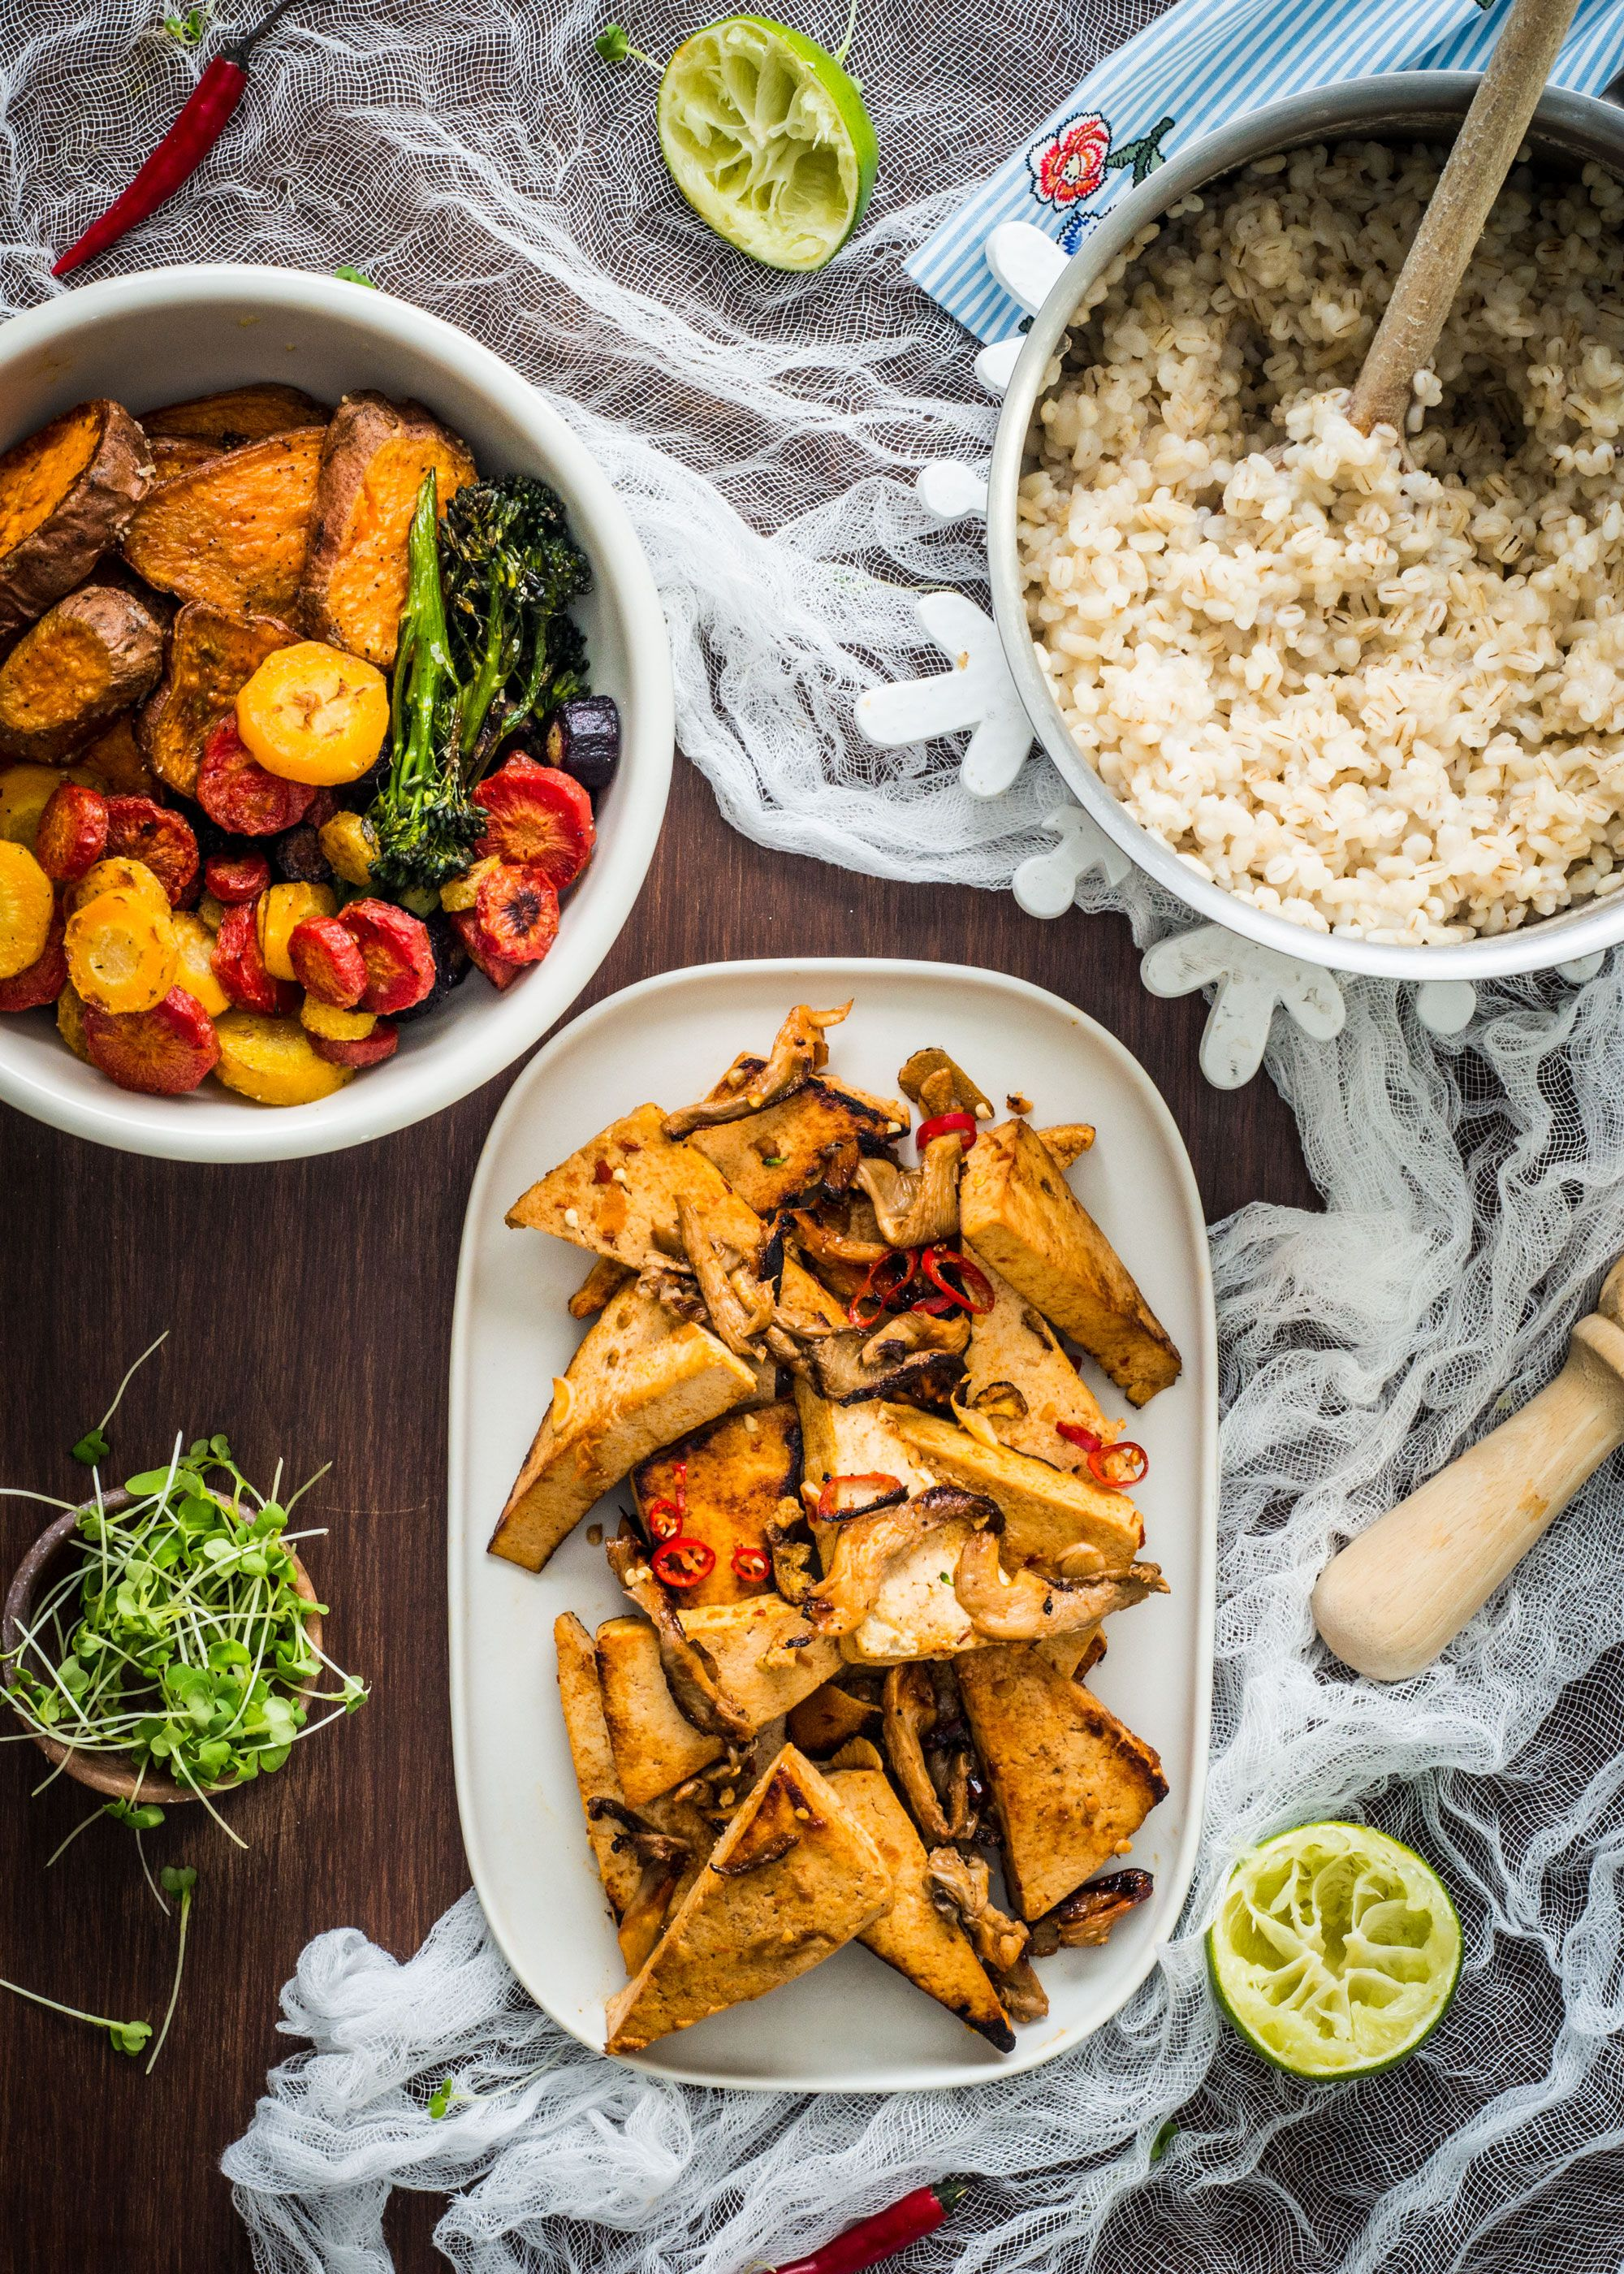 Spicy Tofu Veggie Bowls with Pearl Barley and Oyster Mushrooms